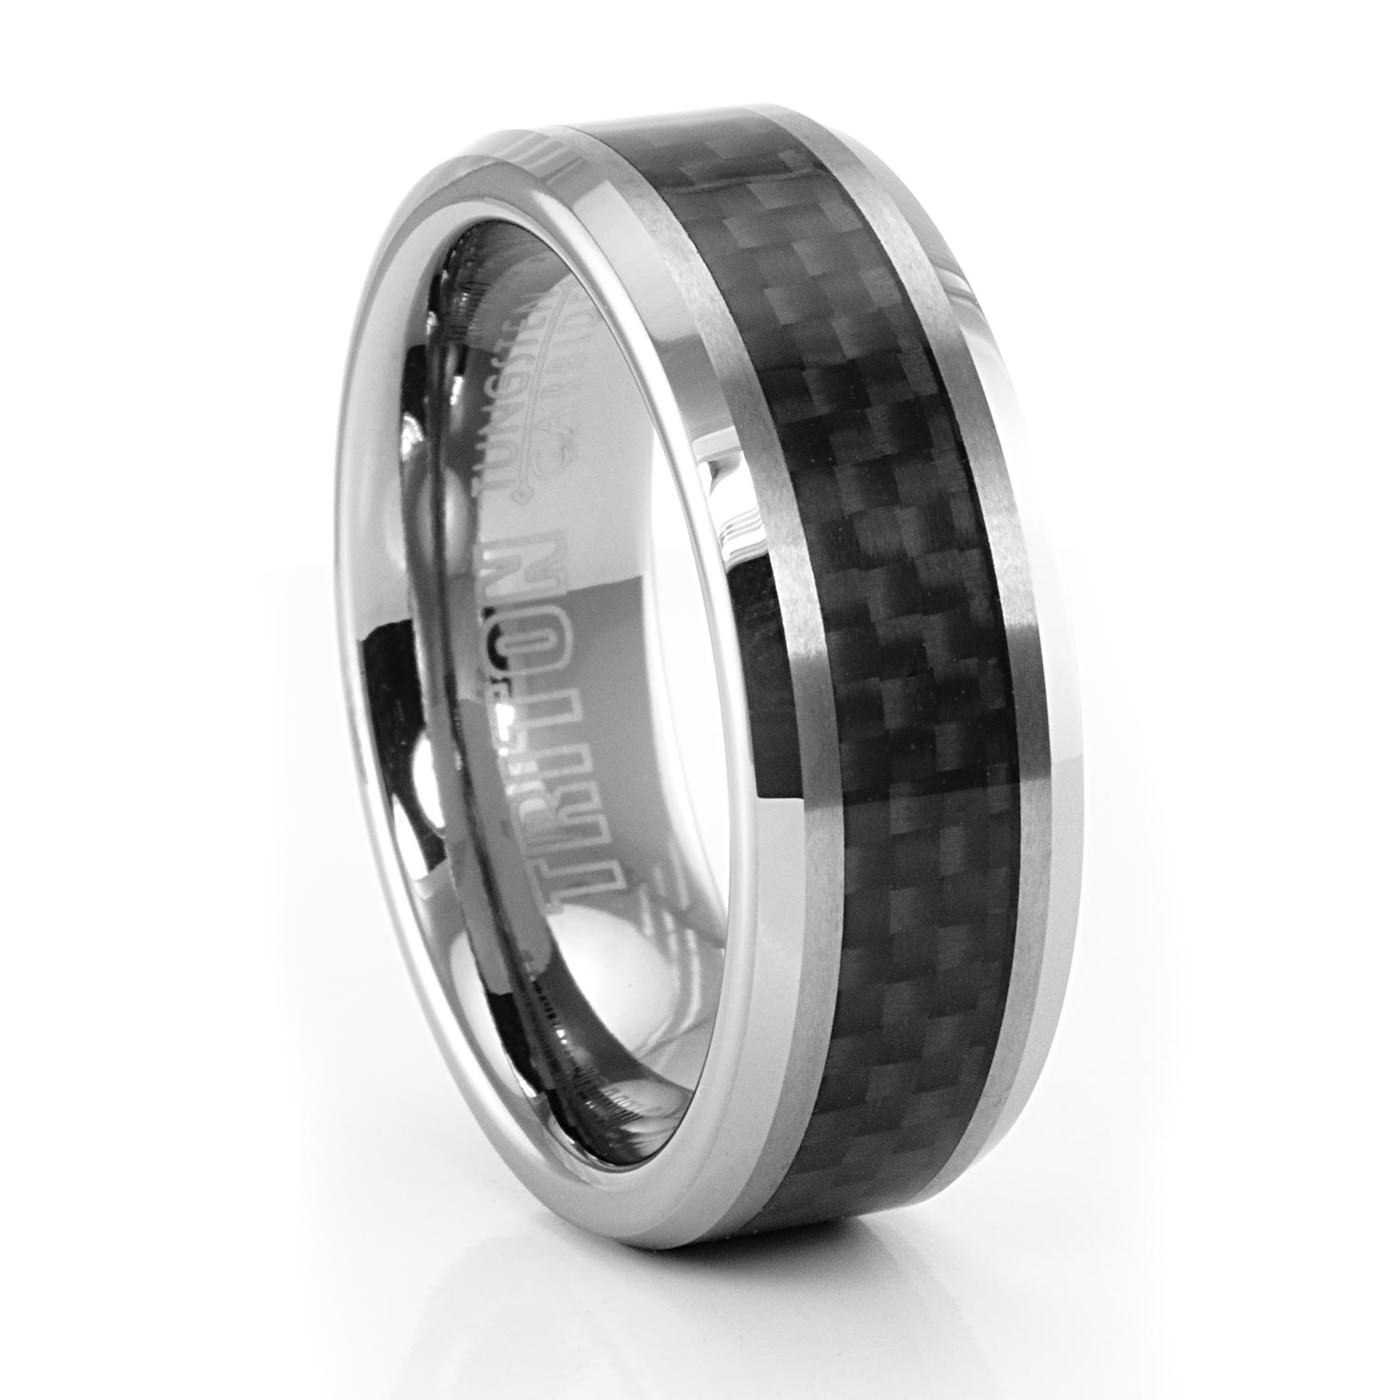 jewelry photo rings wedding x triton akaewn titanium of marvelous com